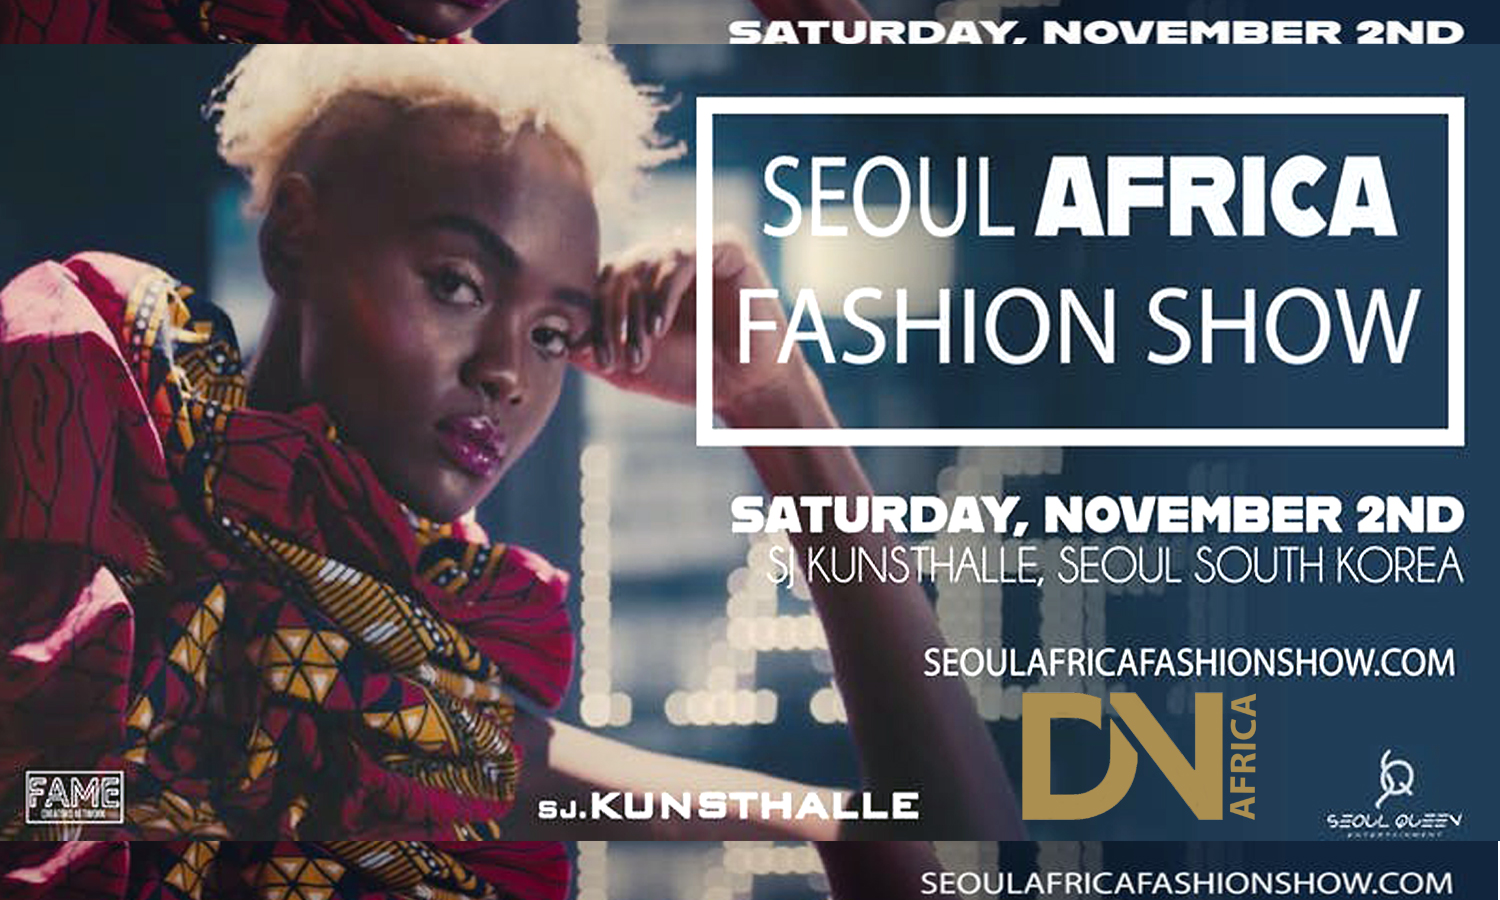 AFRICAN FASHION STYLE MAGAZINE - Fashion Magazine Cover - SEOUL AFRICA FASHION SHOW (SAFS) - PAPER FIG FOUNDATION _ Photographer DAN NGU - Media Partner DN AFRICA - STUDIO 24 NIGERIA - STUDIO 24 INTERNATIONAL - Ifeanyi Christopher Oputa MD AND CEO OF COLVI LIMITED AND STUDIO 24 - Nahomie NOOR COULIBALY